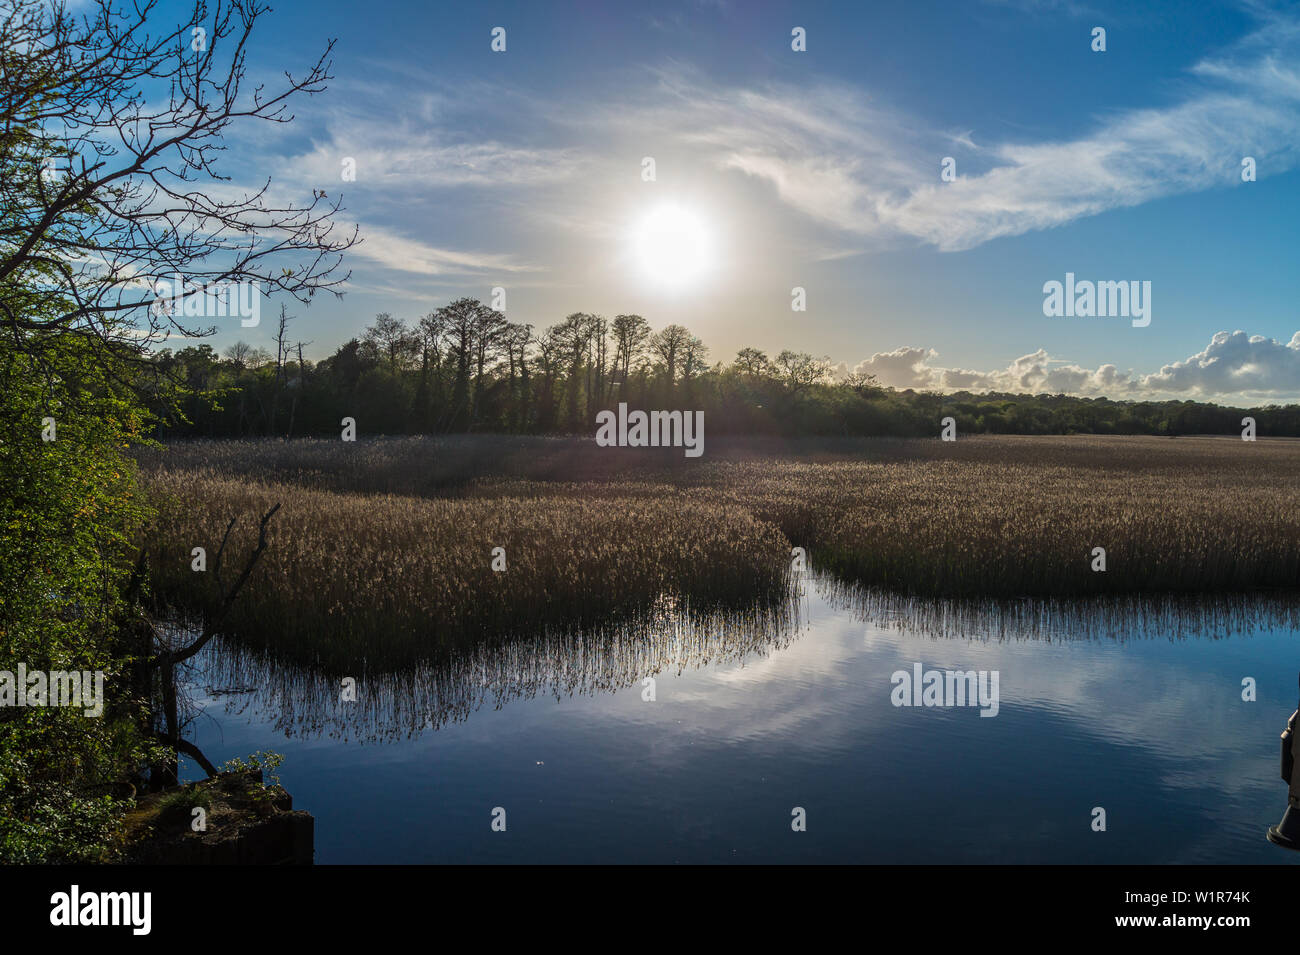 lymington-river-site-of-special-scientific-interest-sssi-lymington-hampshire-england-W1R74K.jpg